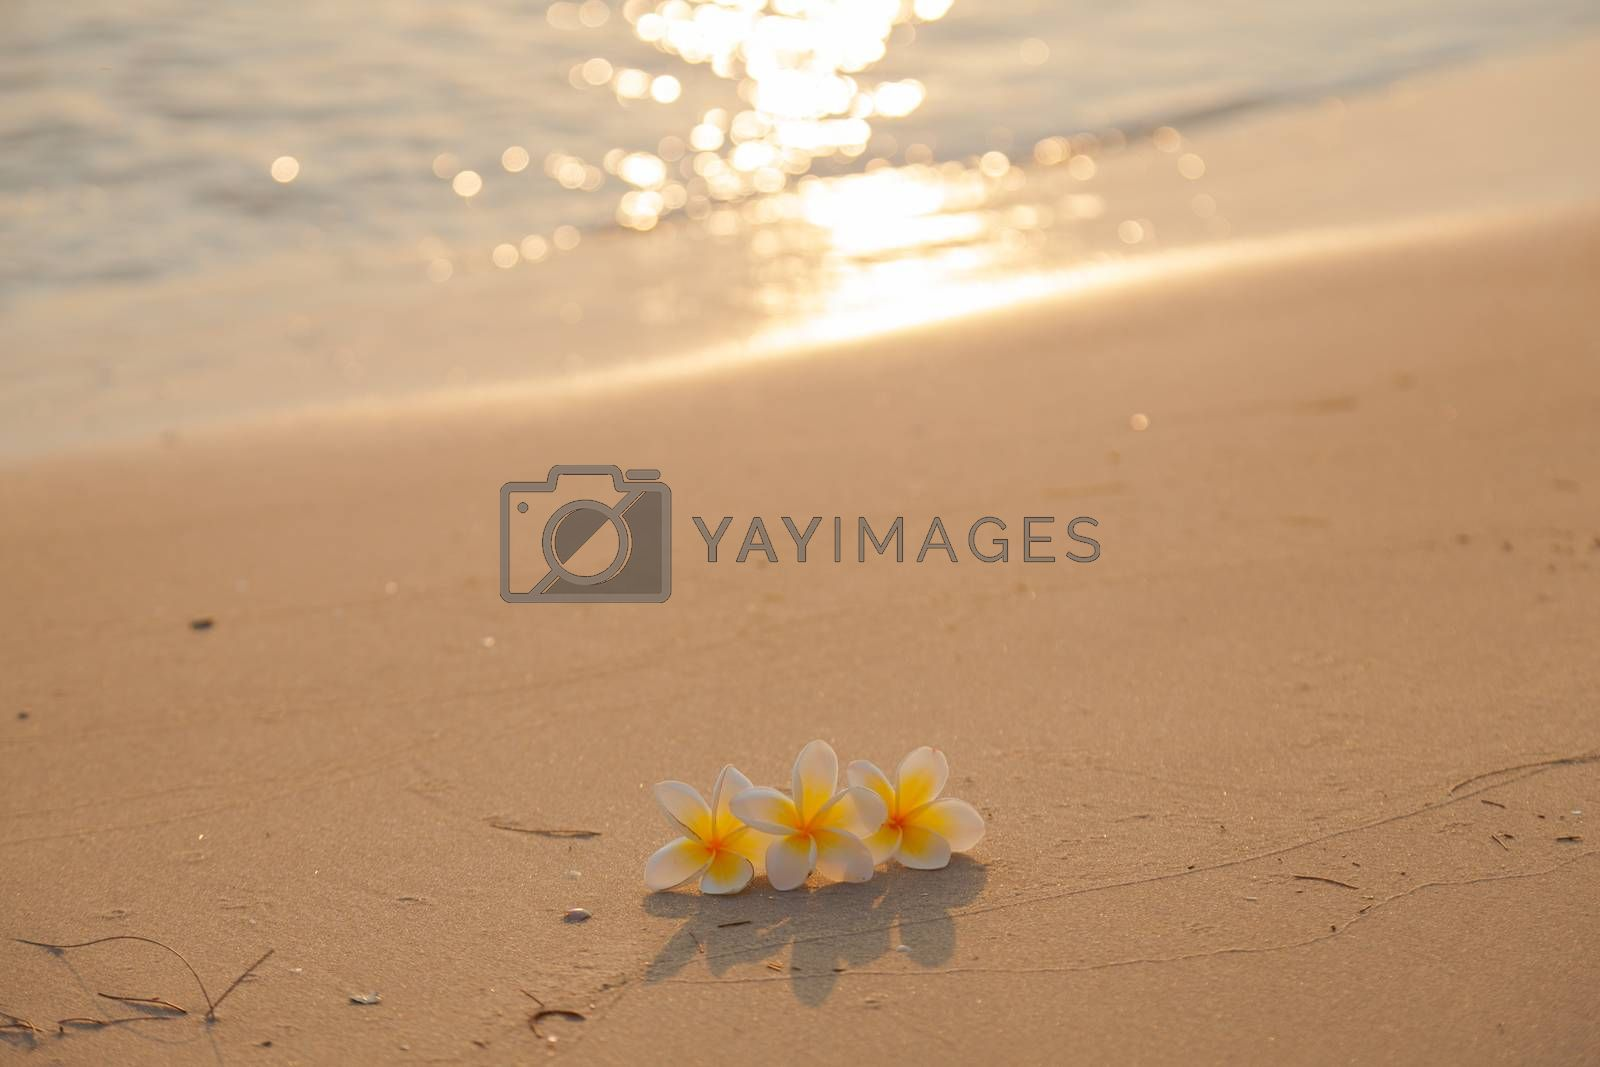 Flower on the sand. White flower on the beach in the morning sunlight shining from behind.